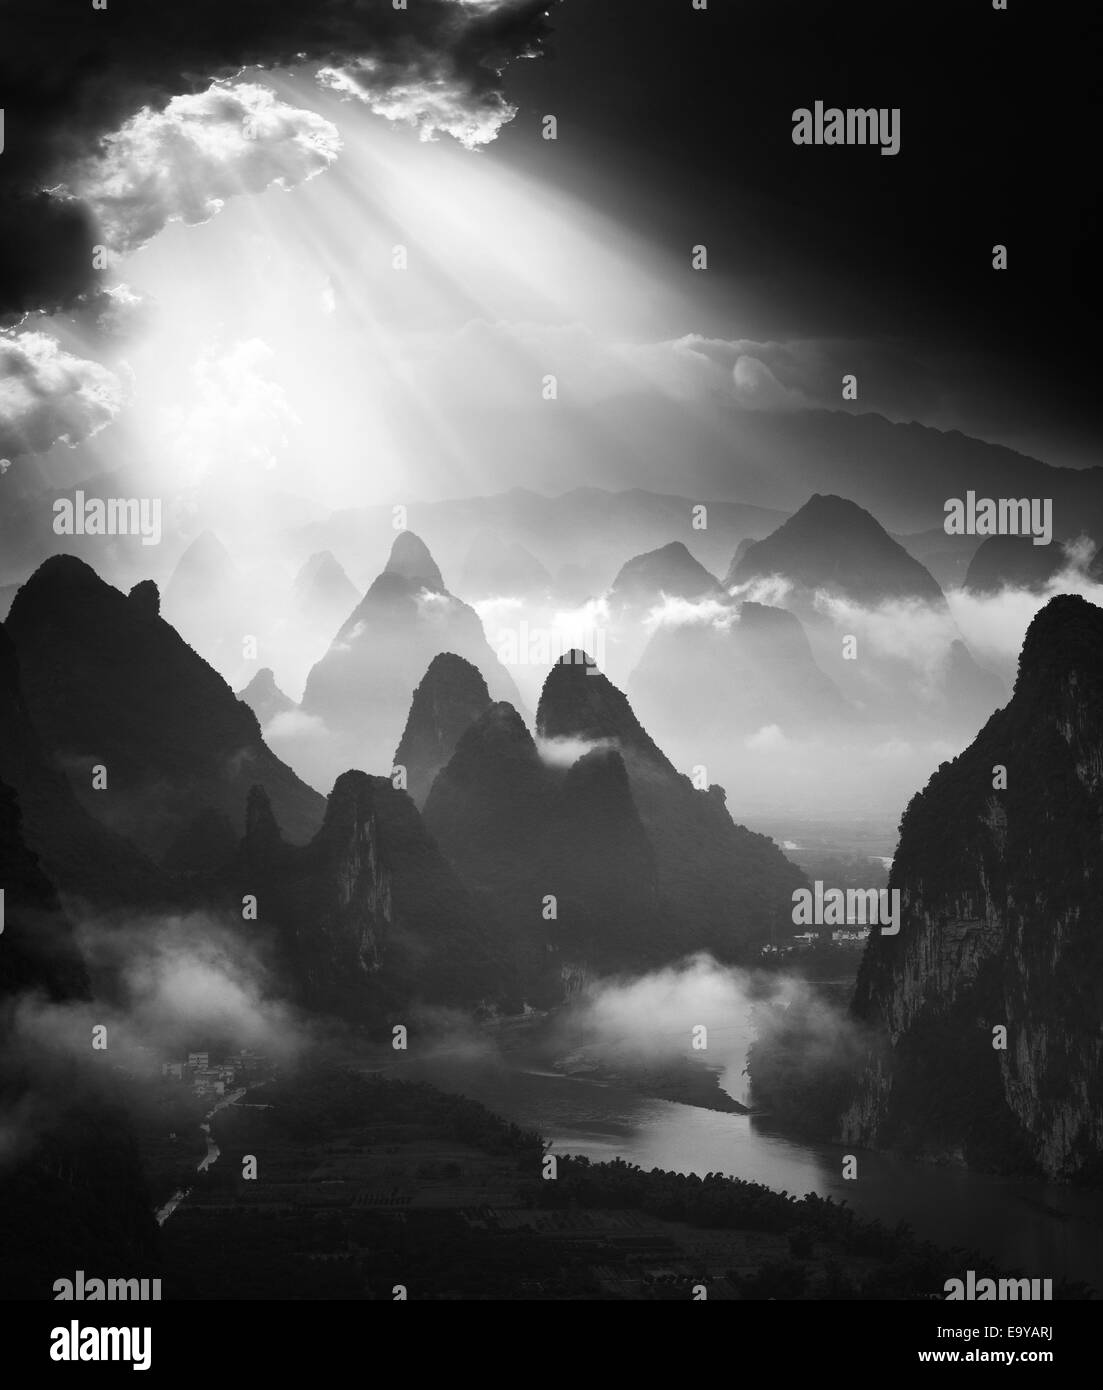 Guilin, Yangshuo scenery - Stock Image